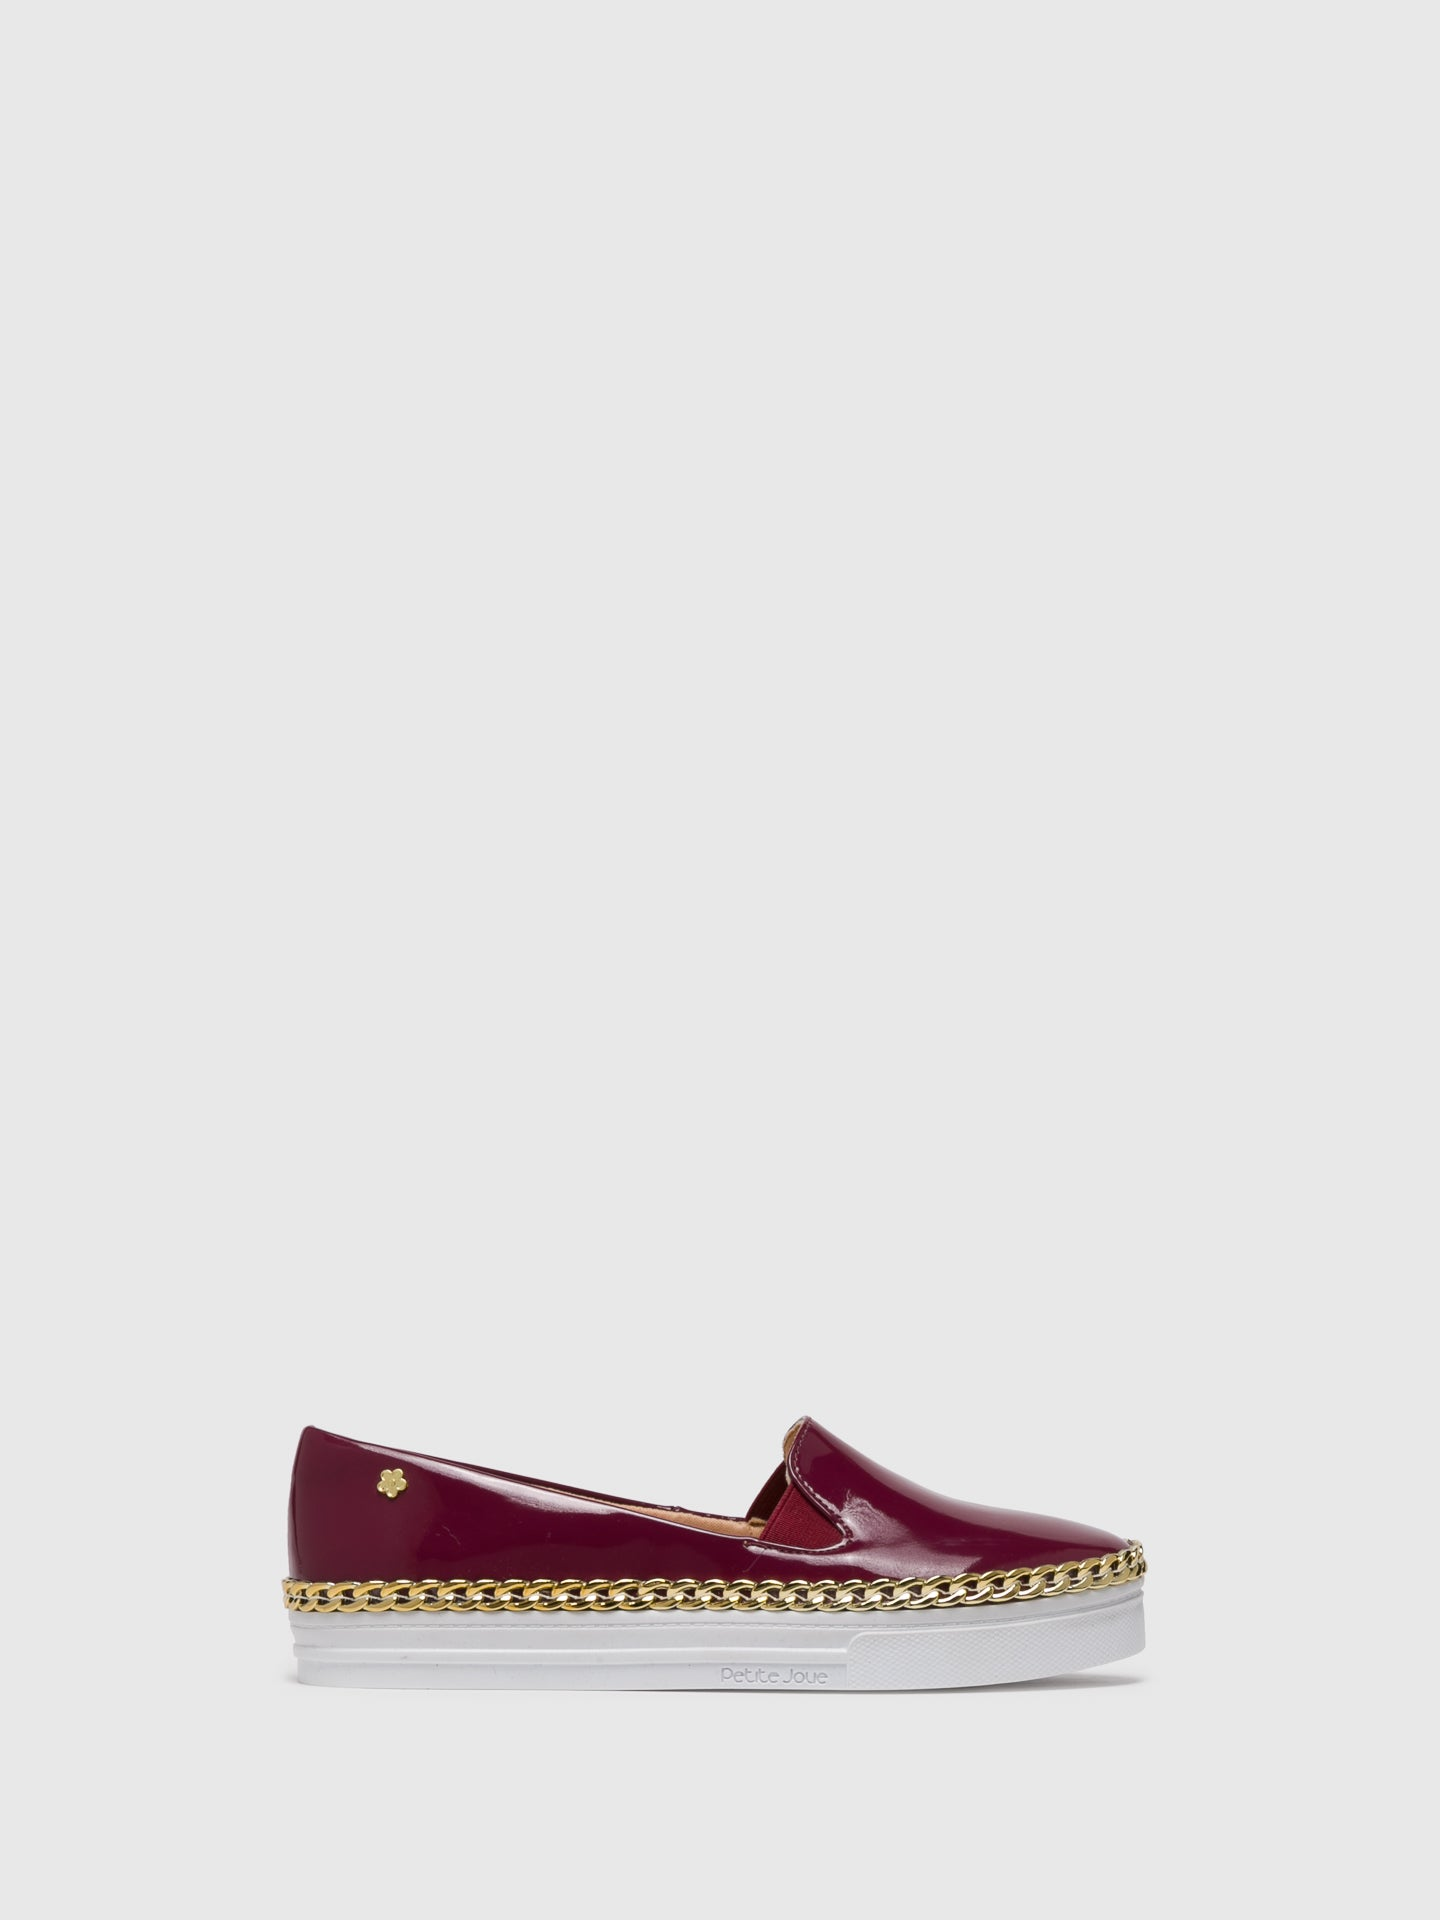 PETITE JOLIE by PARODI DarkRed Slip-on Trainers